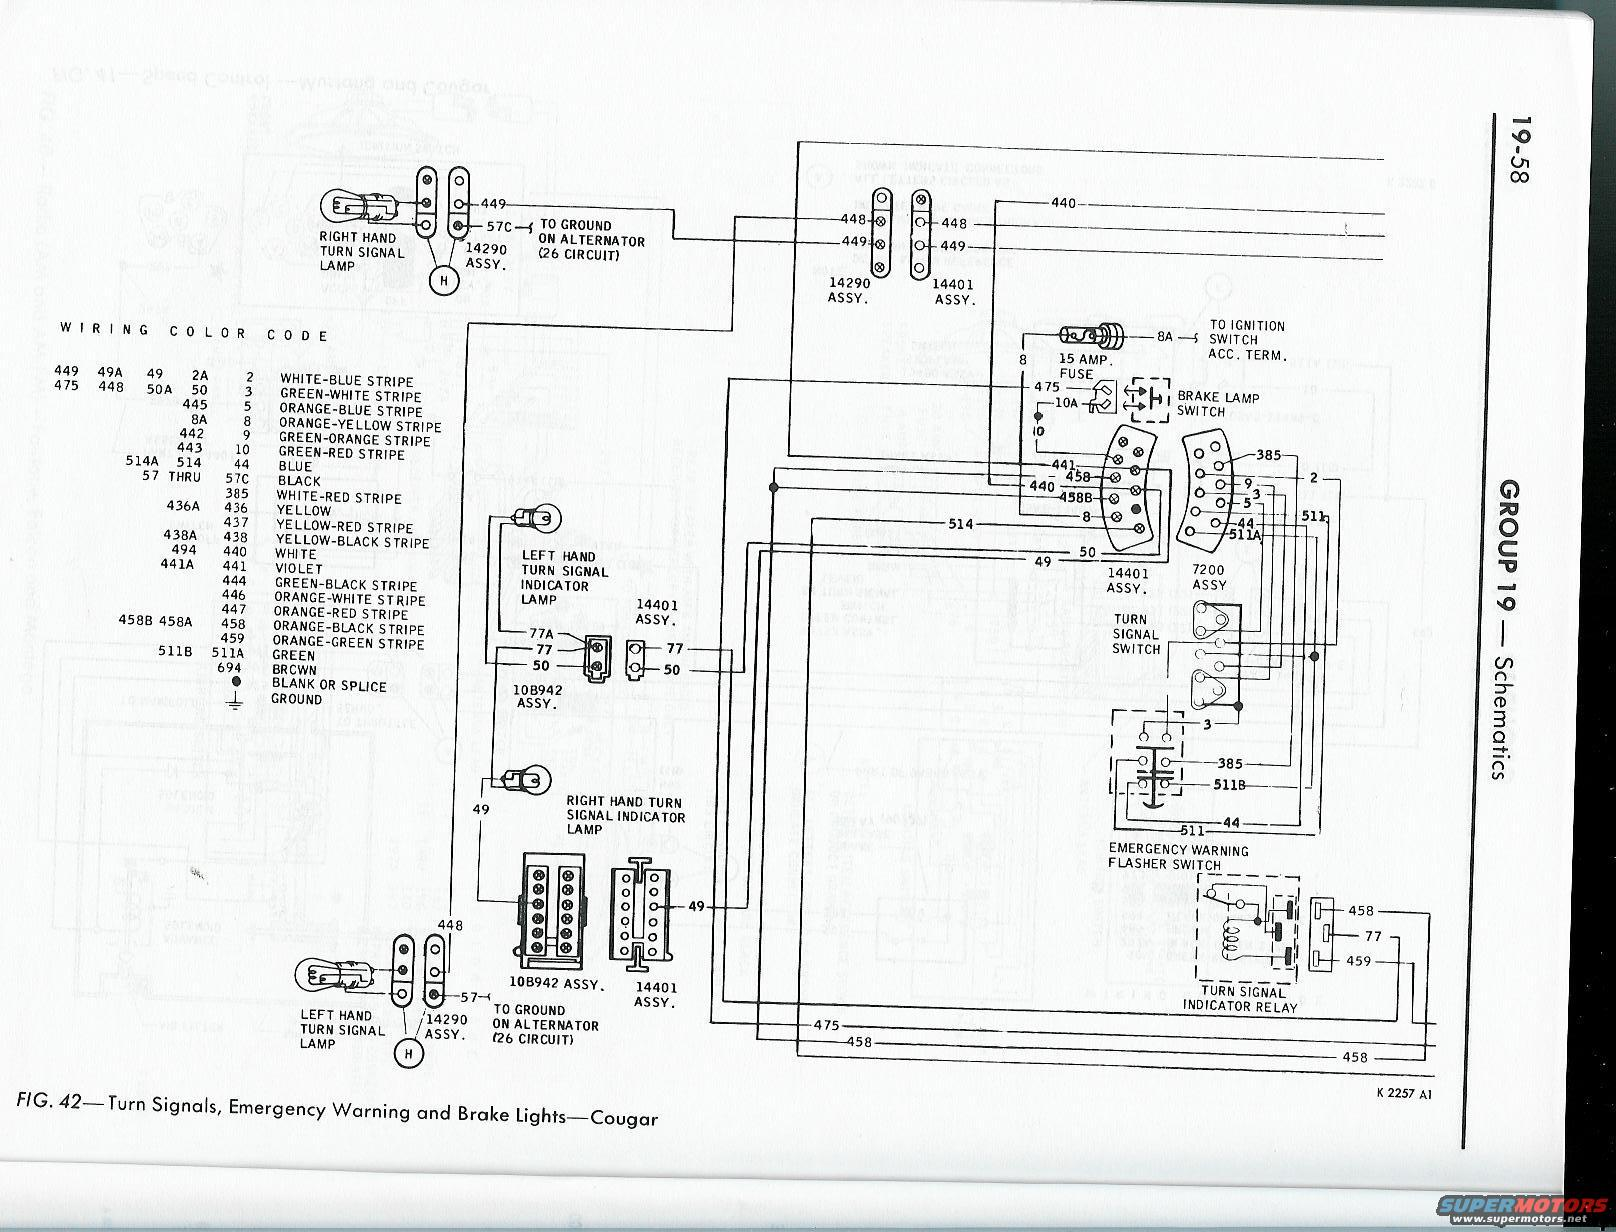 Steering Suspension Diagrams also Schematics h moreover more 139 additionally more 139 besides Escort Mk2 Wiring Diagram. on 1968 mustang turn signal wiring diagram